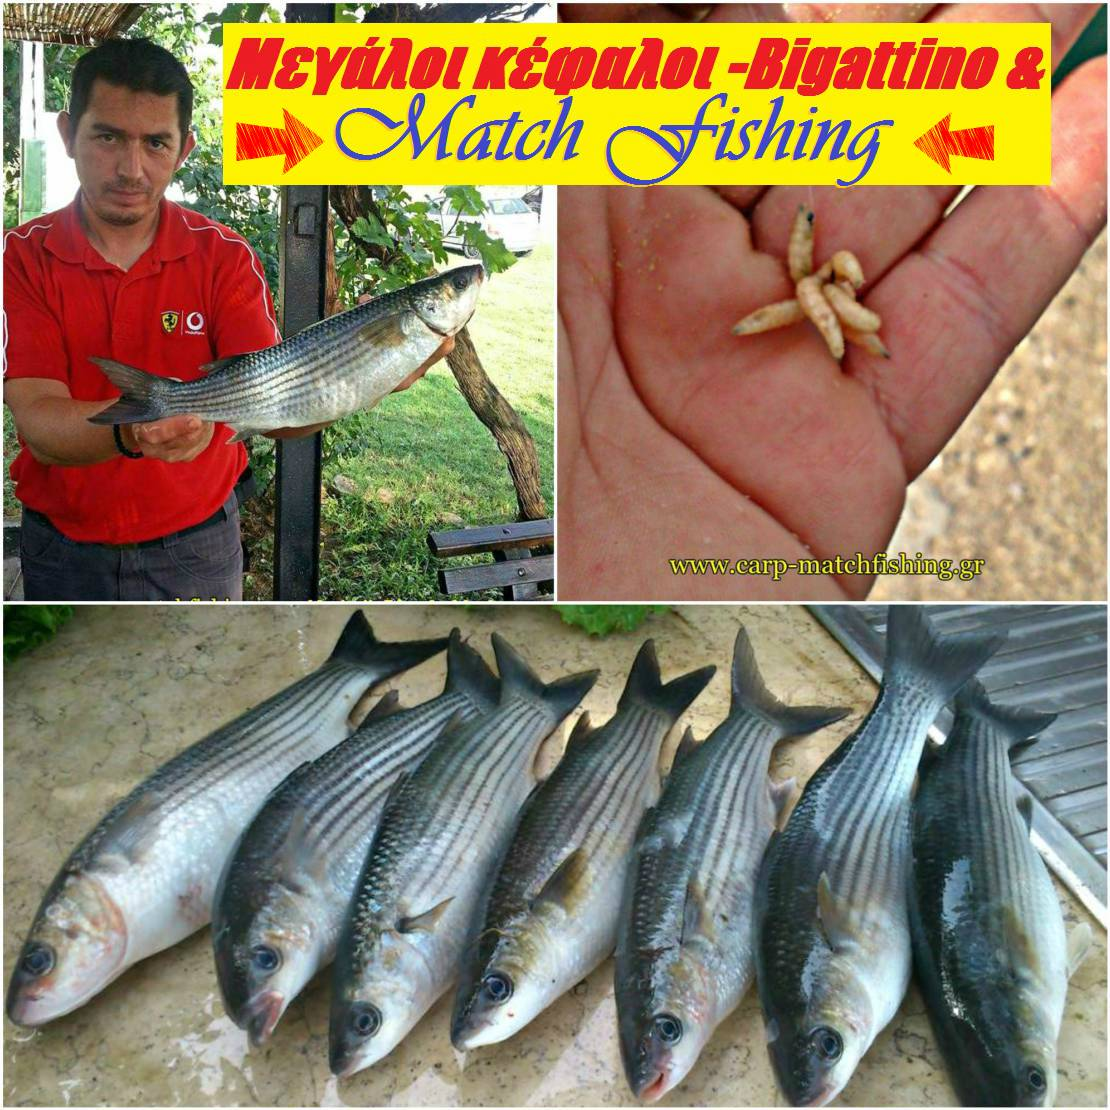 Matchfishing-big-kefalos-mullet-2-carpmatchfishing